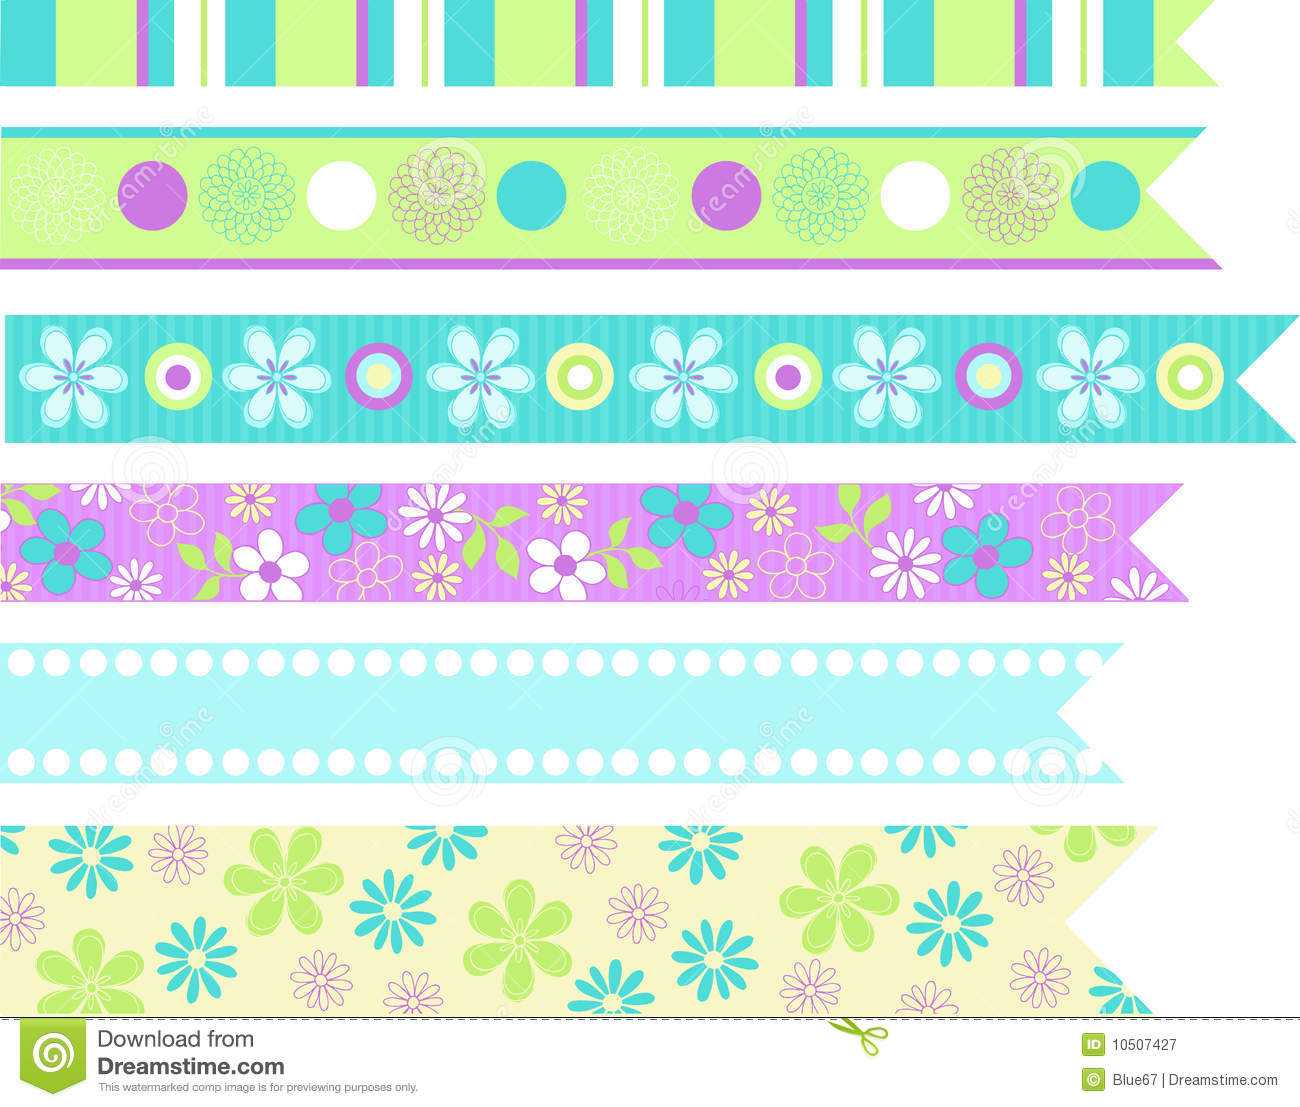 Stationary Ribbons Vector Elements Royalty Free Stock Photography Image 10507427